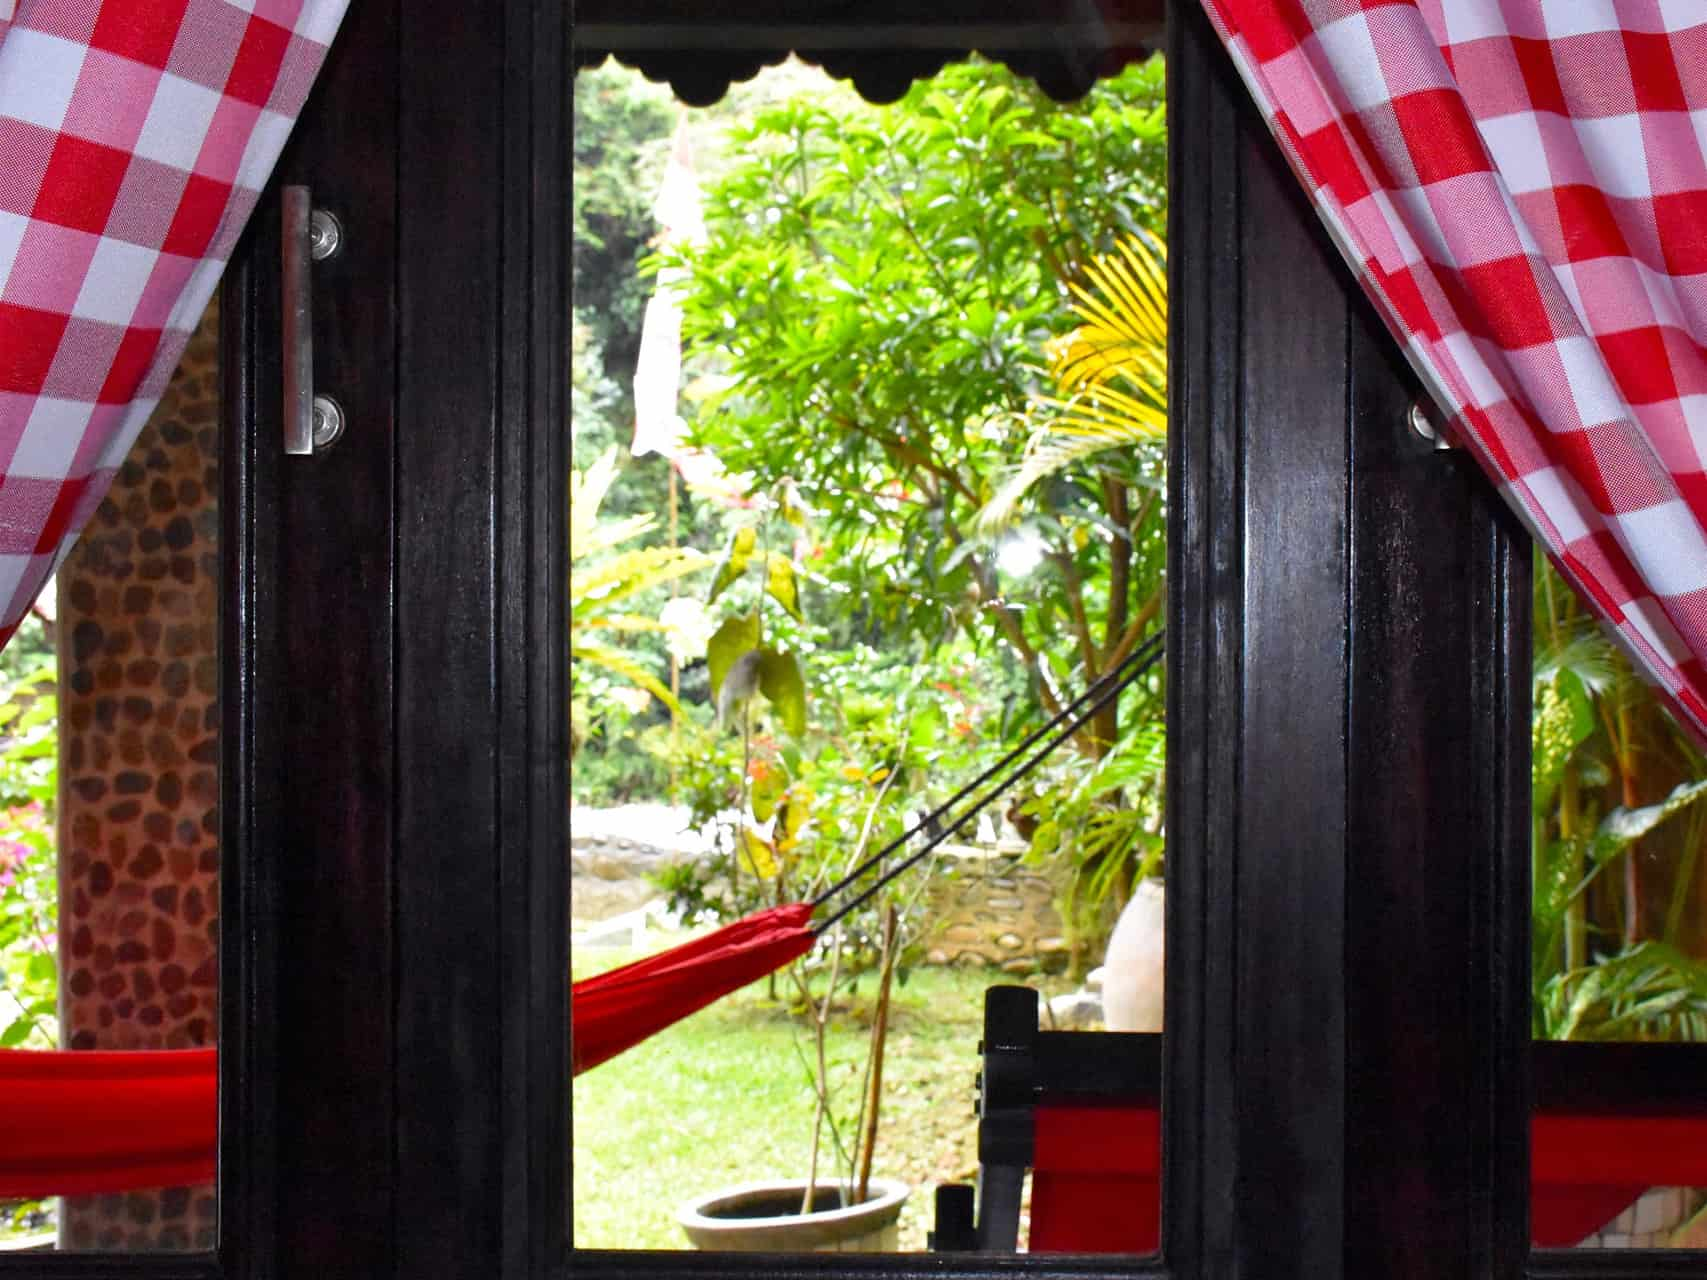 JUNGLE VIEW ROOM AT ECOTRAVEL COTTAGES BUKIT LAWANG - SUMATRA ECOTRAVEL